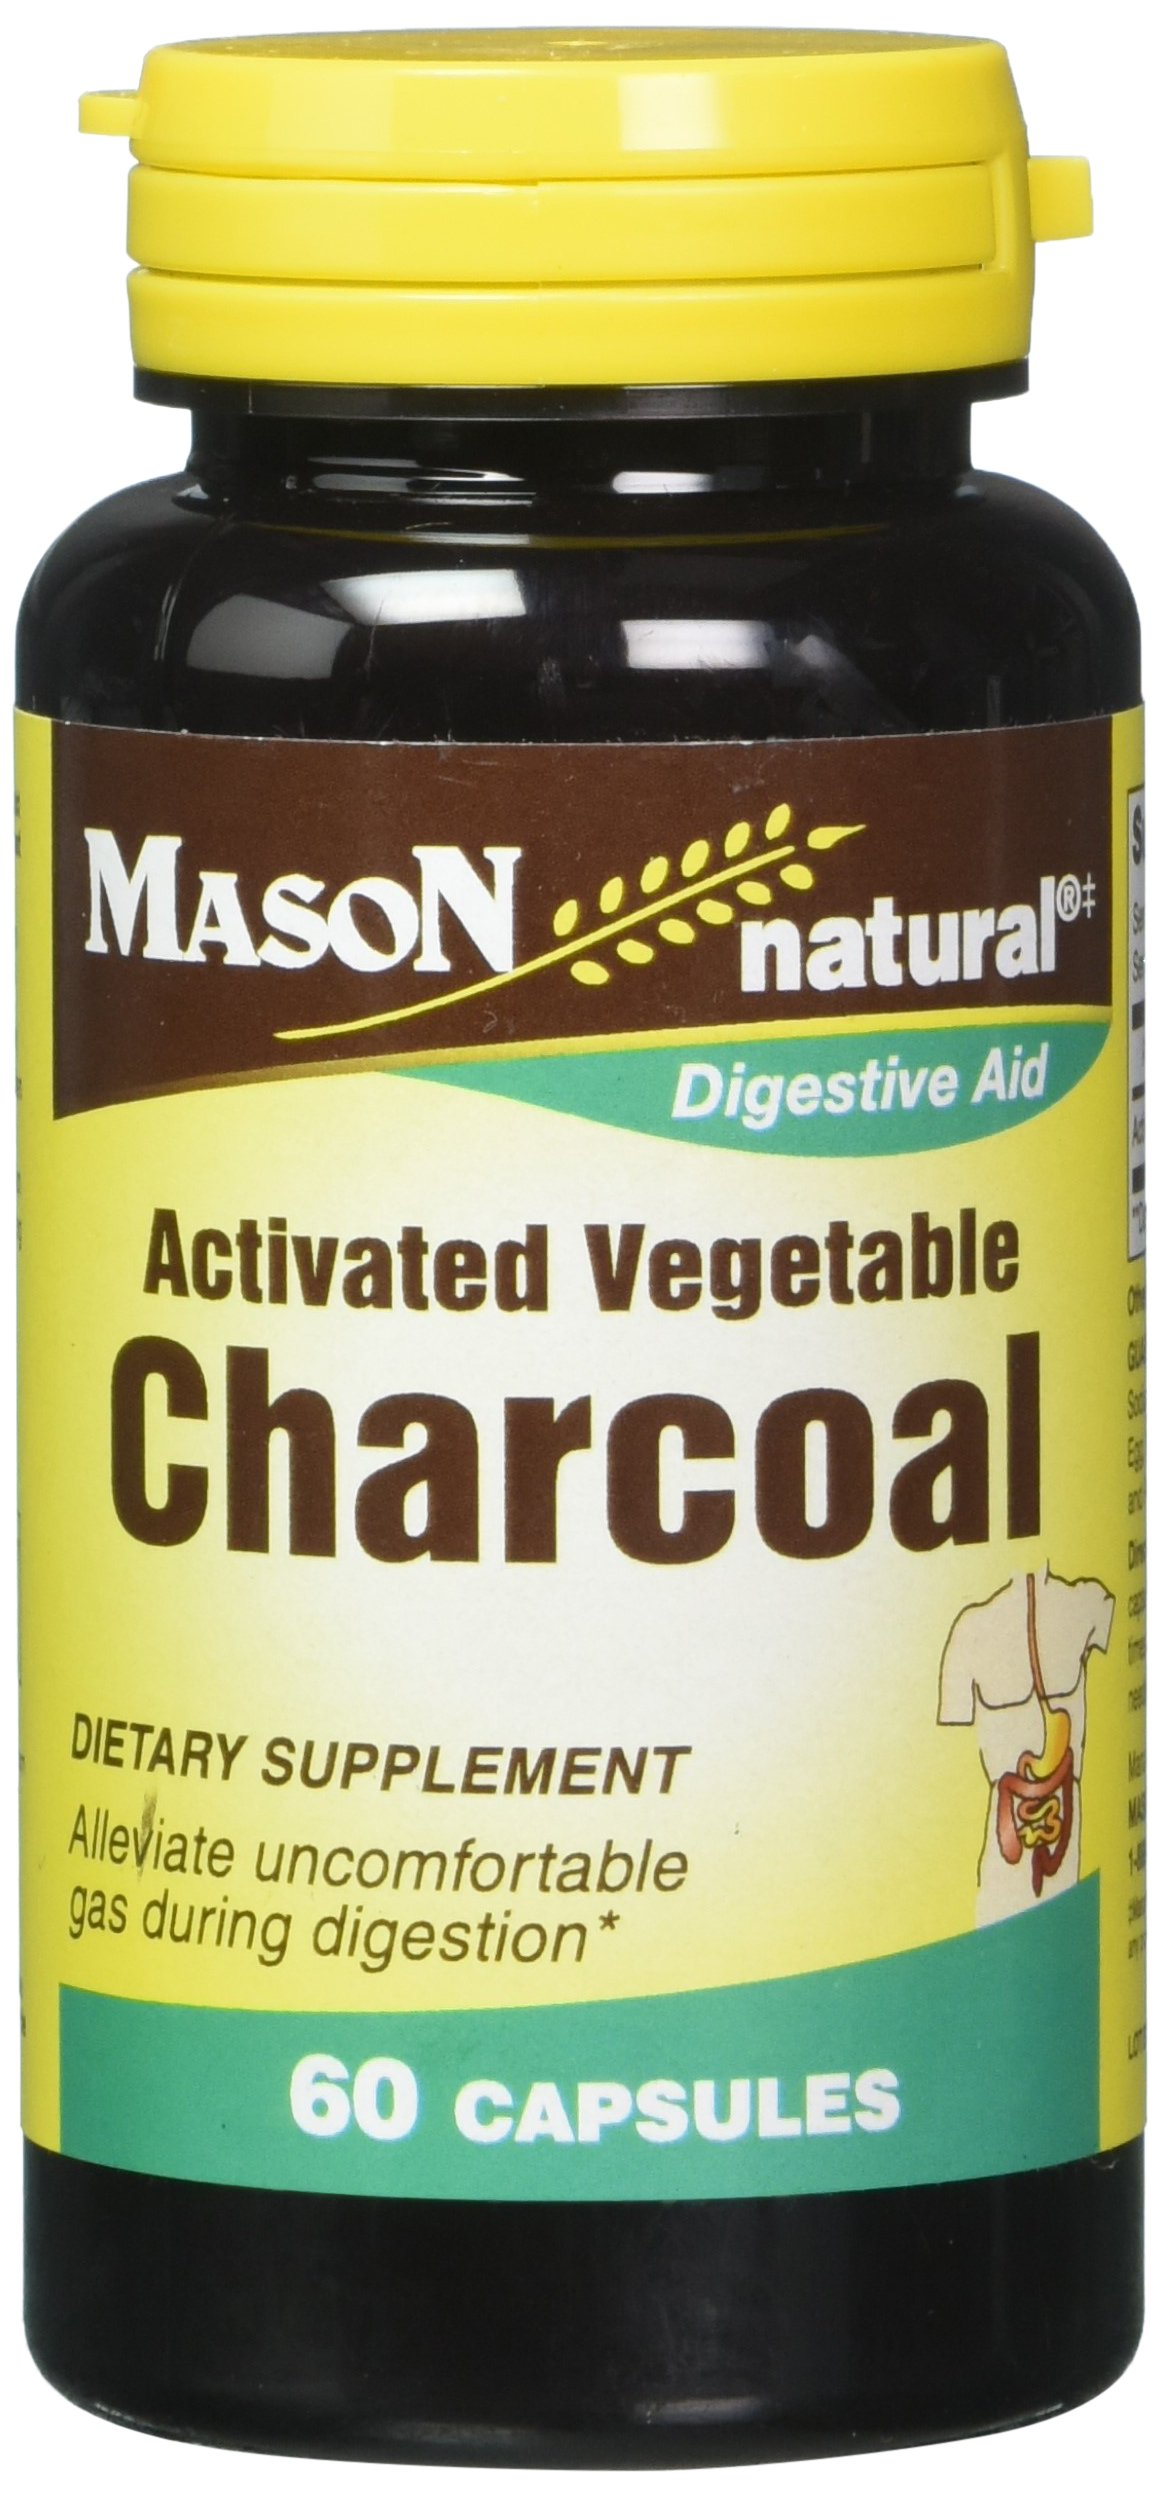 Mason Vitamins Activated Digestive Aid Vegetable Charcoal Capsules, 60 Count